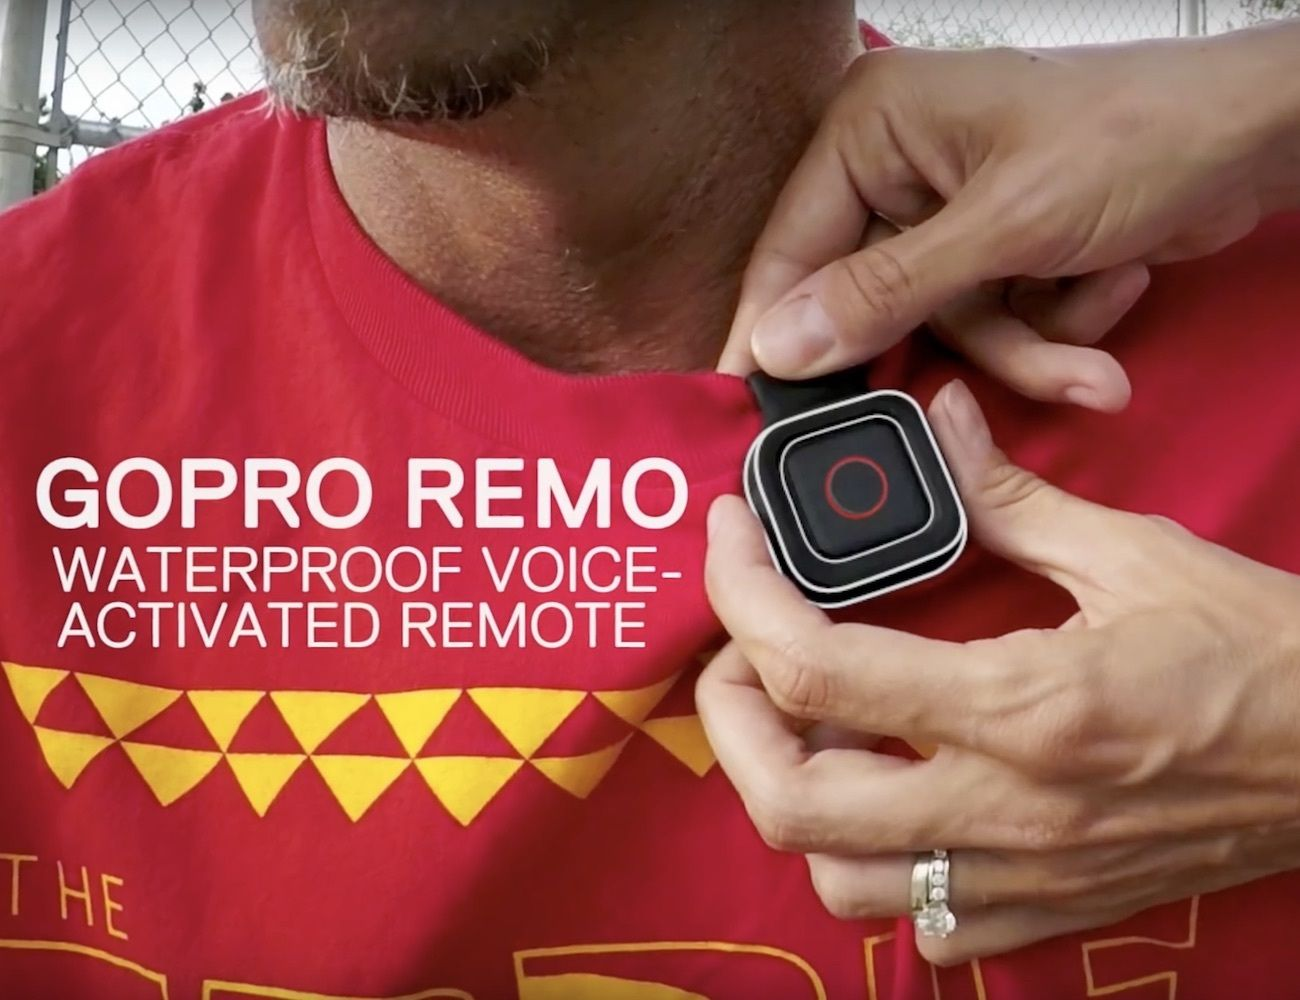 GoPro+Remo+Voice+Activated+Remote